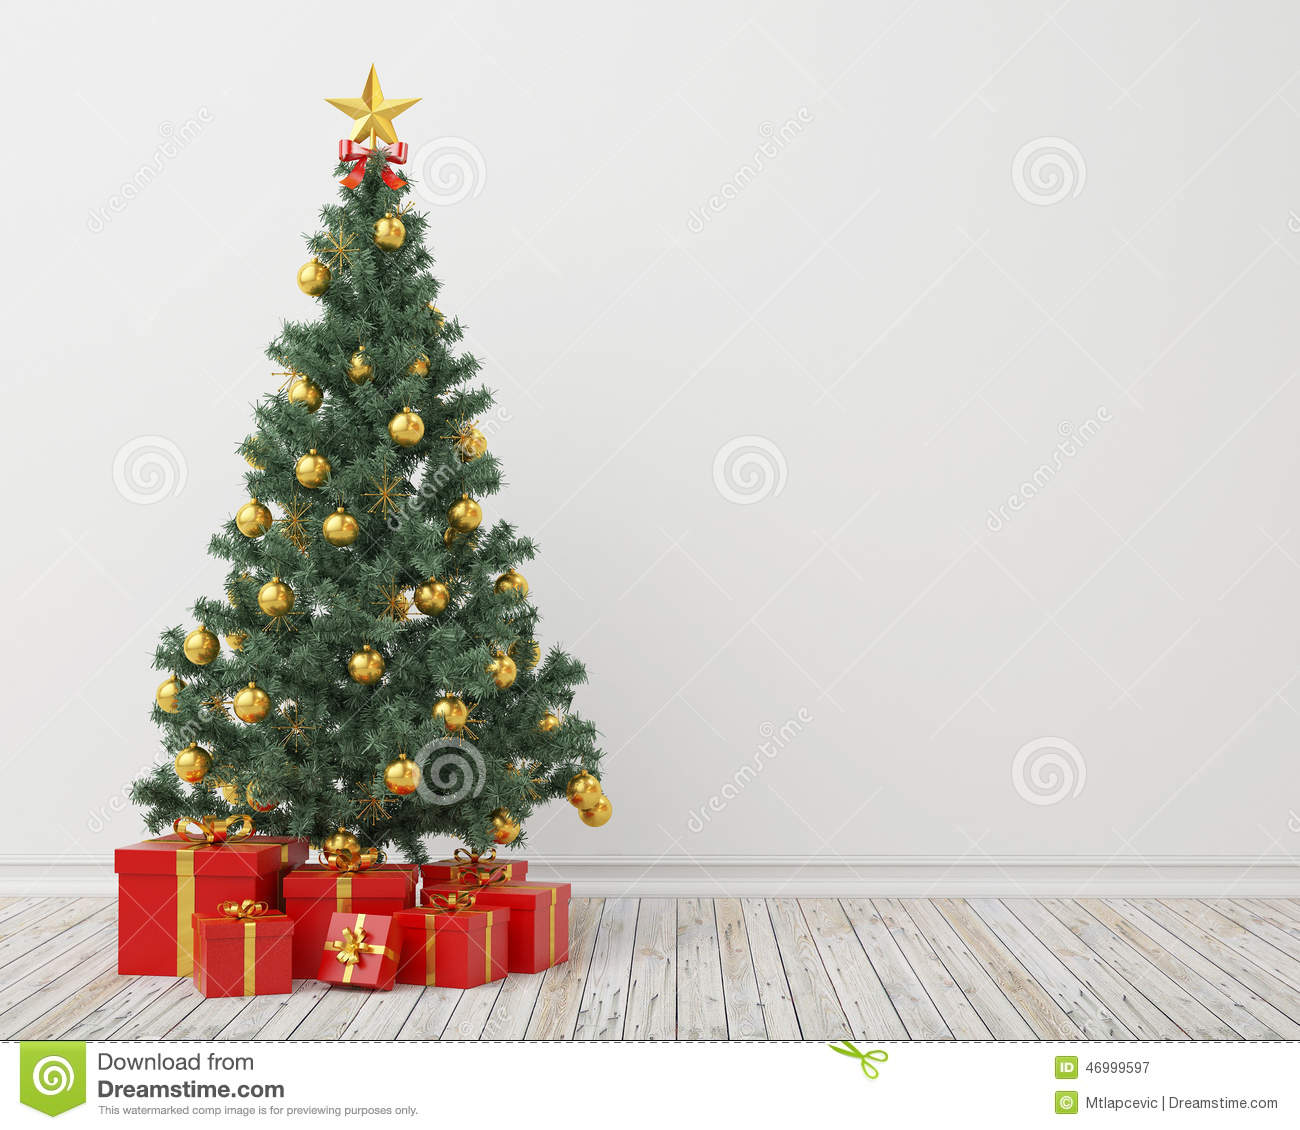 Christmas tree with presents in the vintage room background stock christmas tree with presents in the vintage room background voltagebd